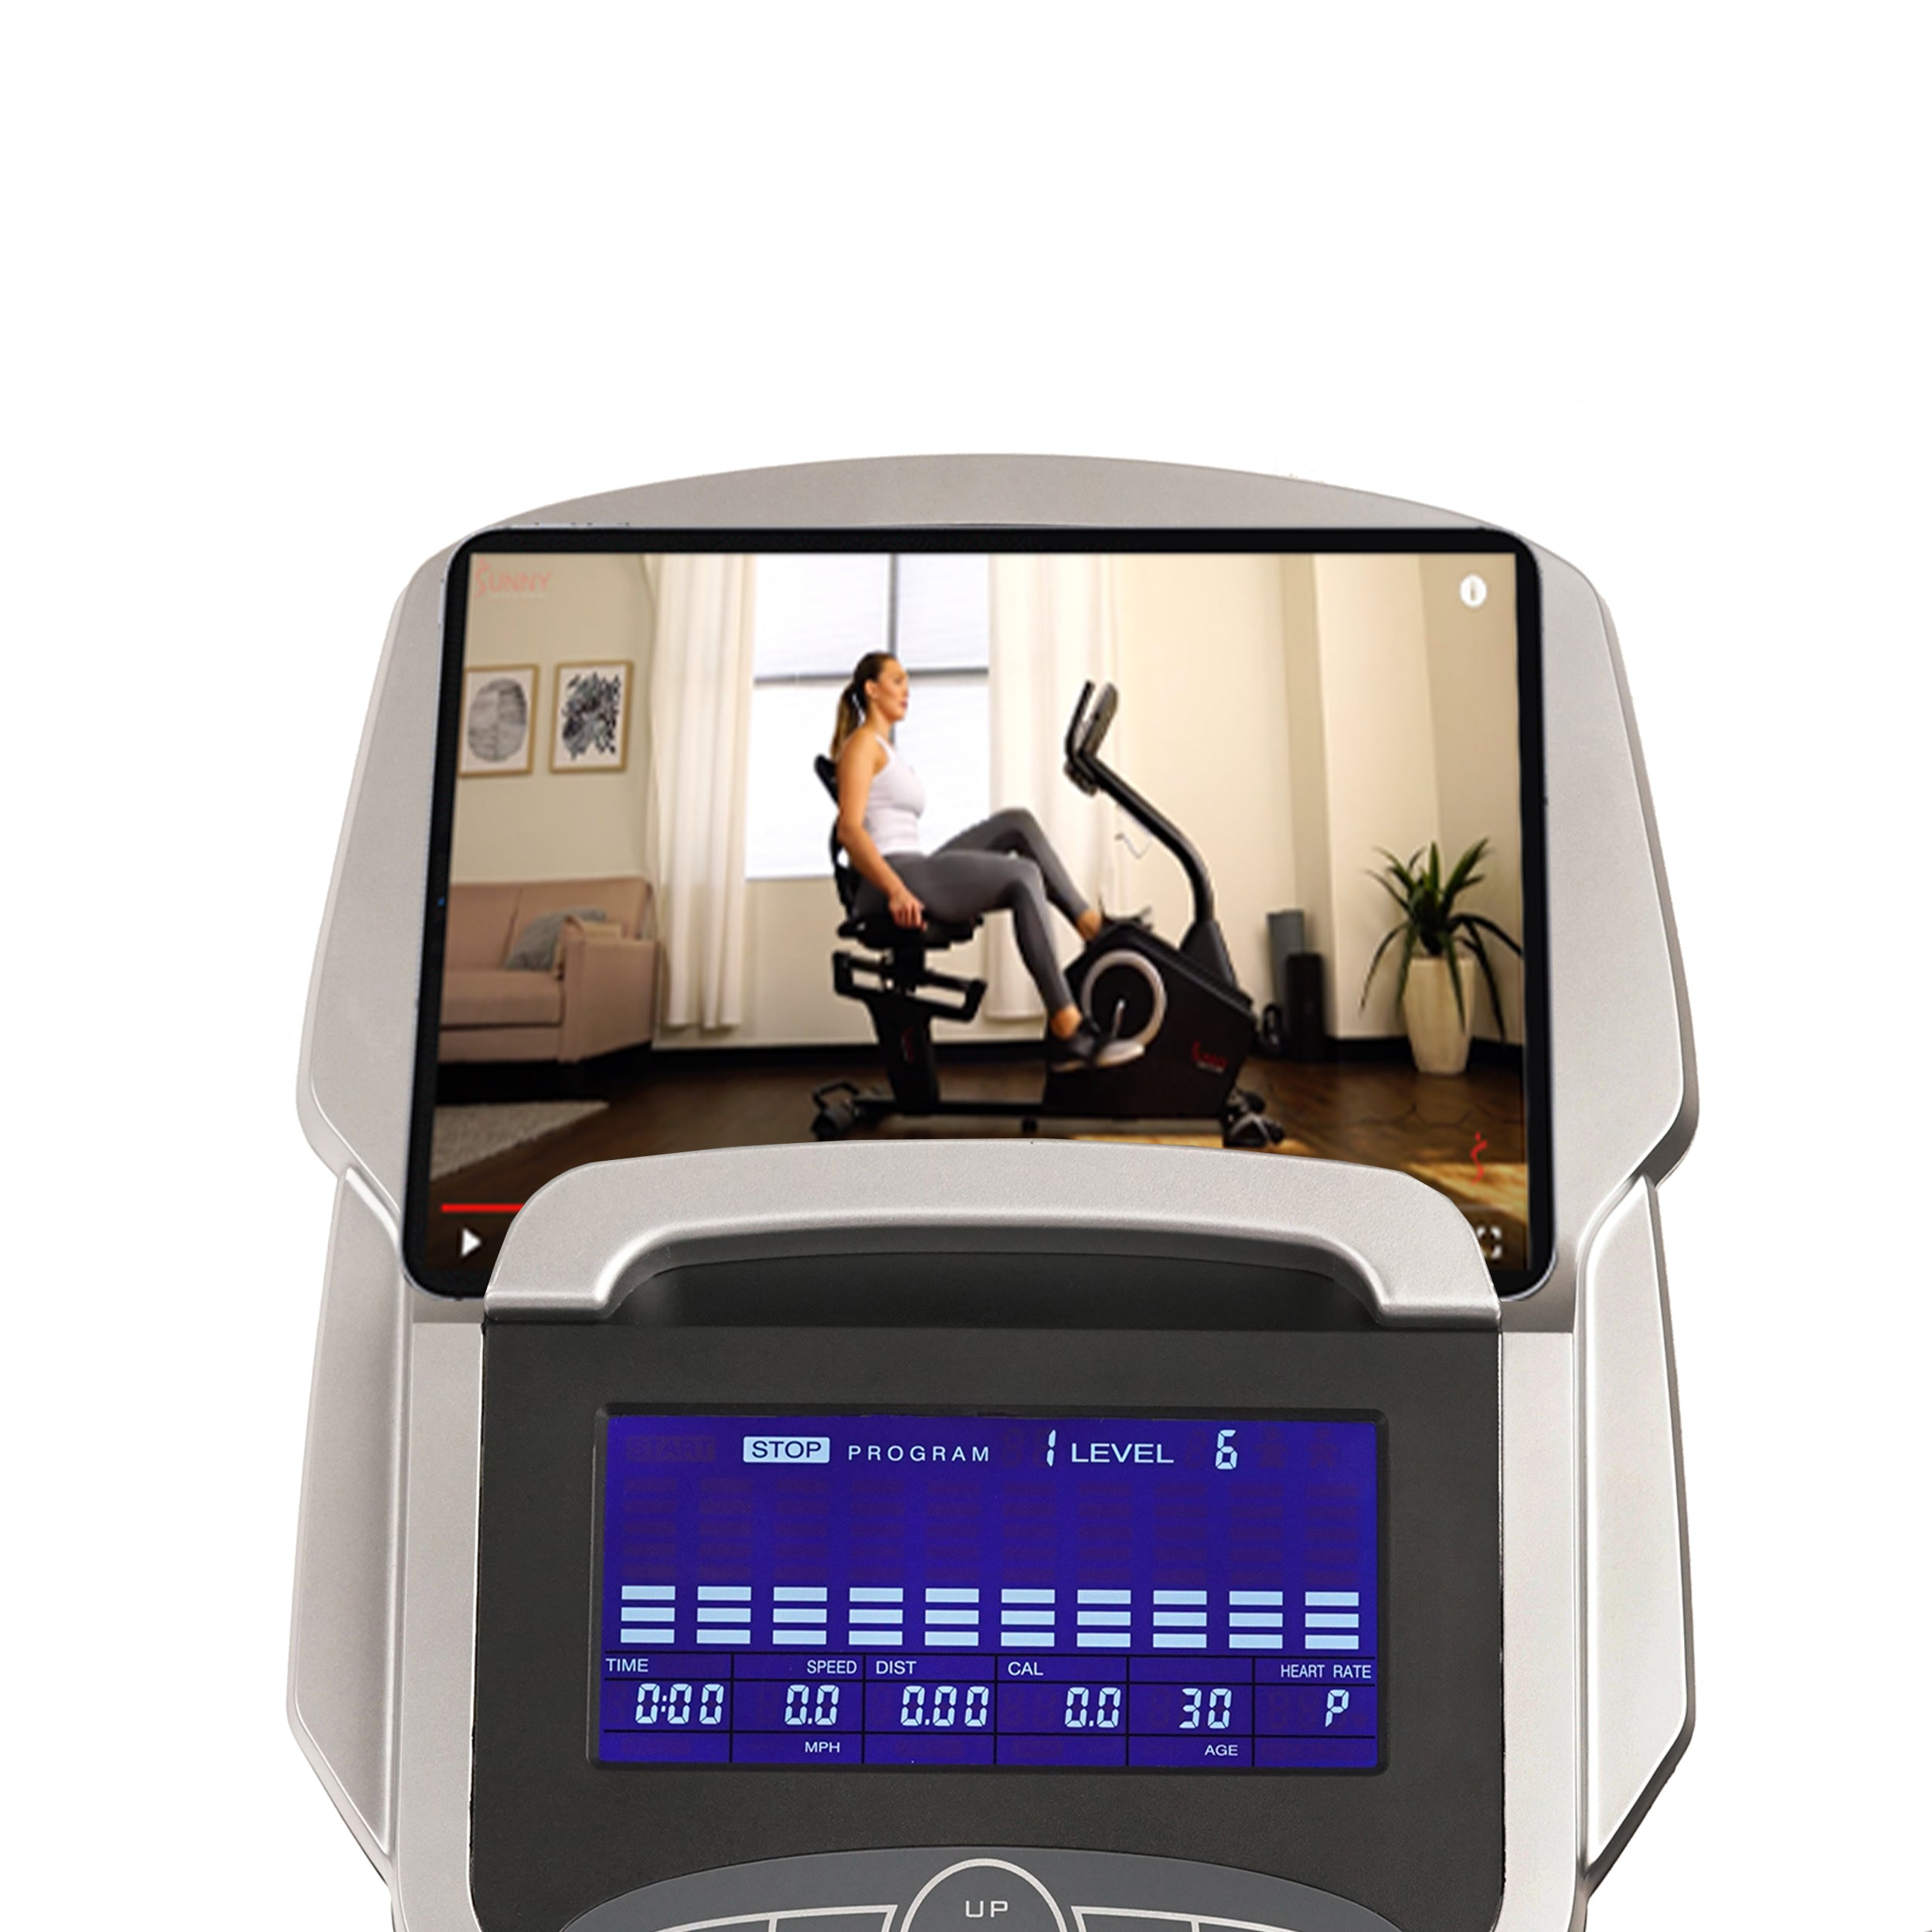 sunny-health-fitness-bikes-stationary-recumbent-bike-programmable-display-16-level-magnetic-resistance-ipad-tablet-holder-SF-RB4850-deviceholder